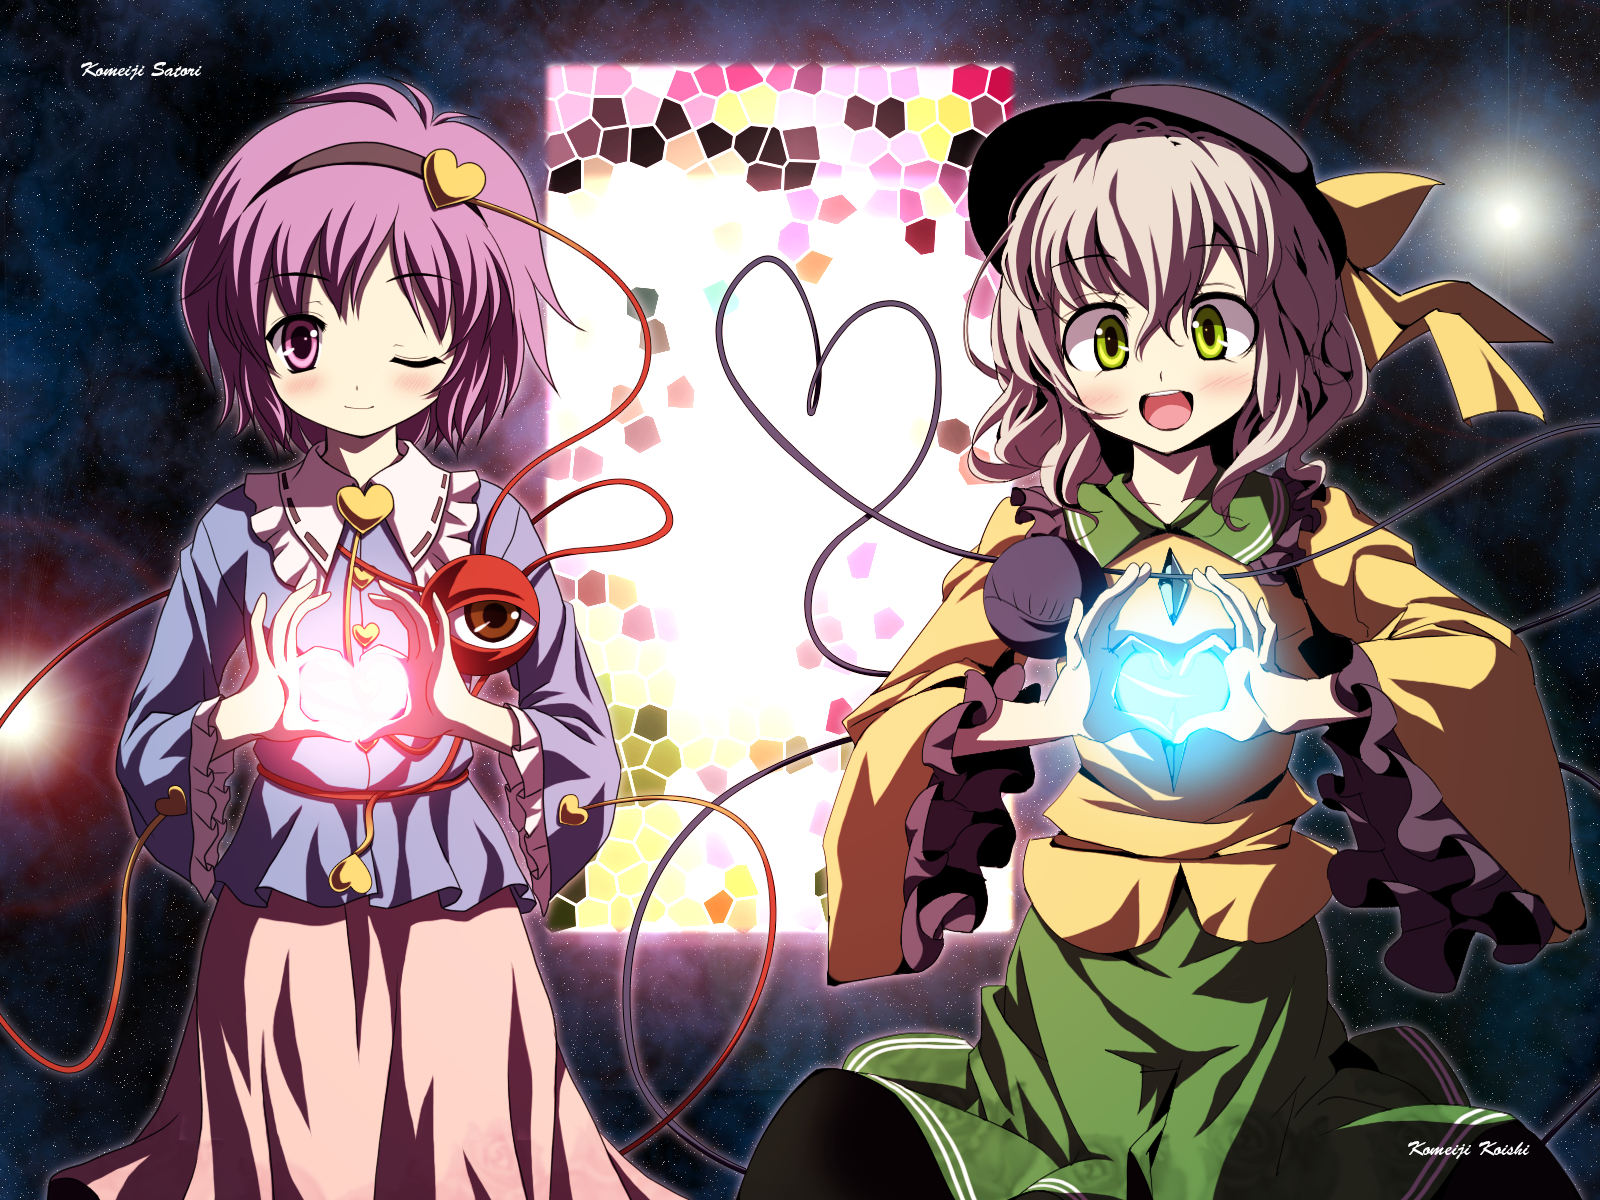 Touhou Project - Страница 15 Bd1d673553076816c145bffea10d341a